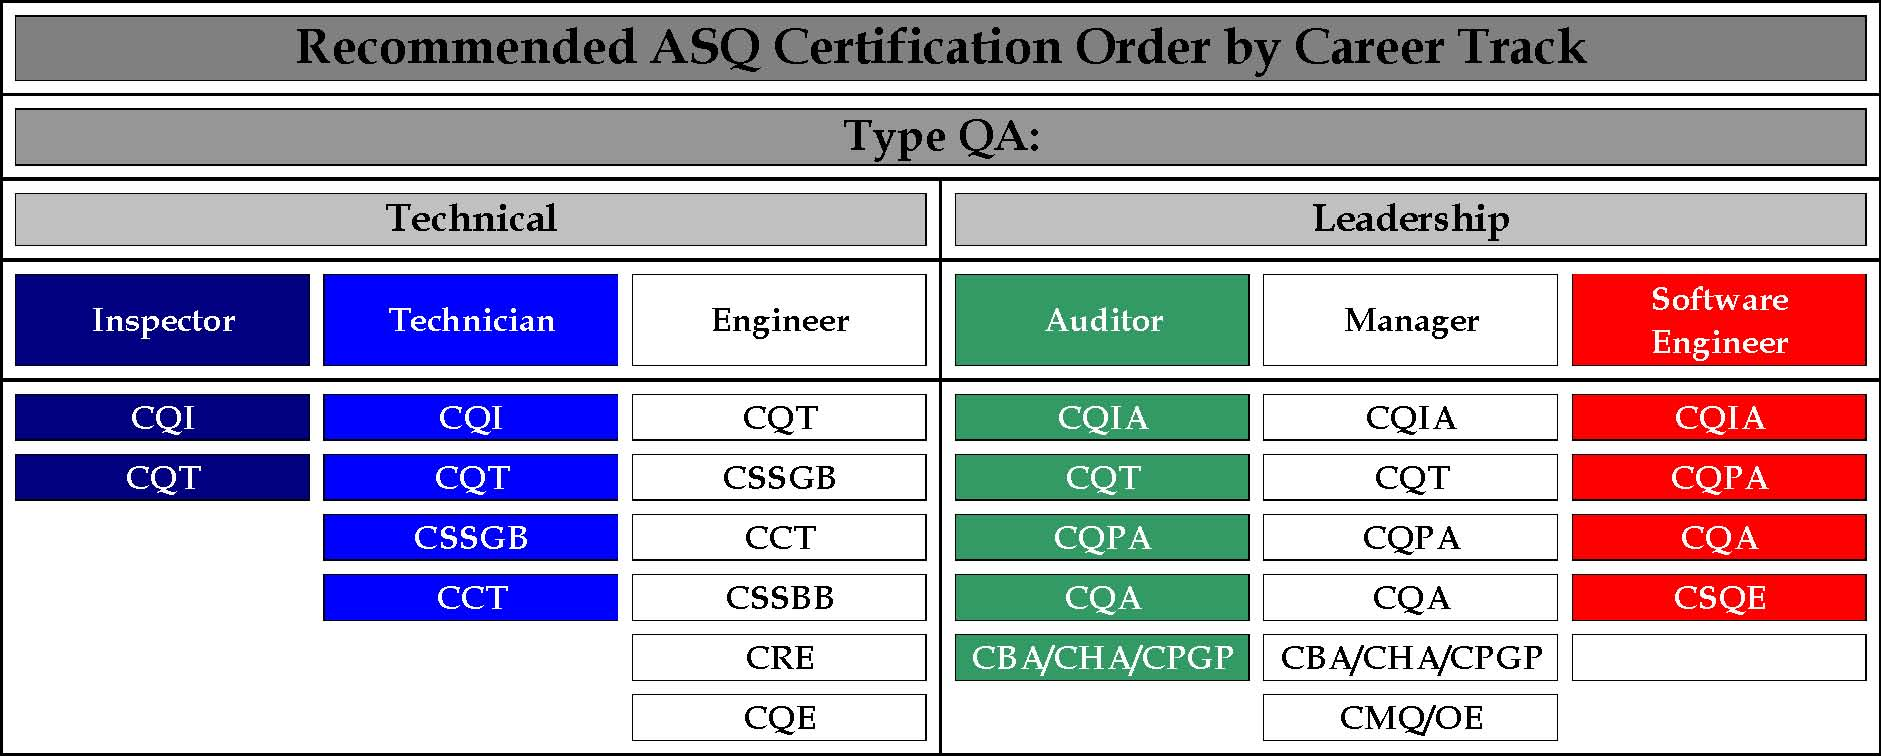 asq_ideal_sequence_certification_career_track_jp2